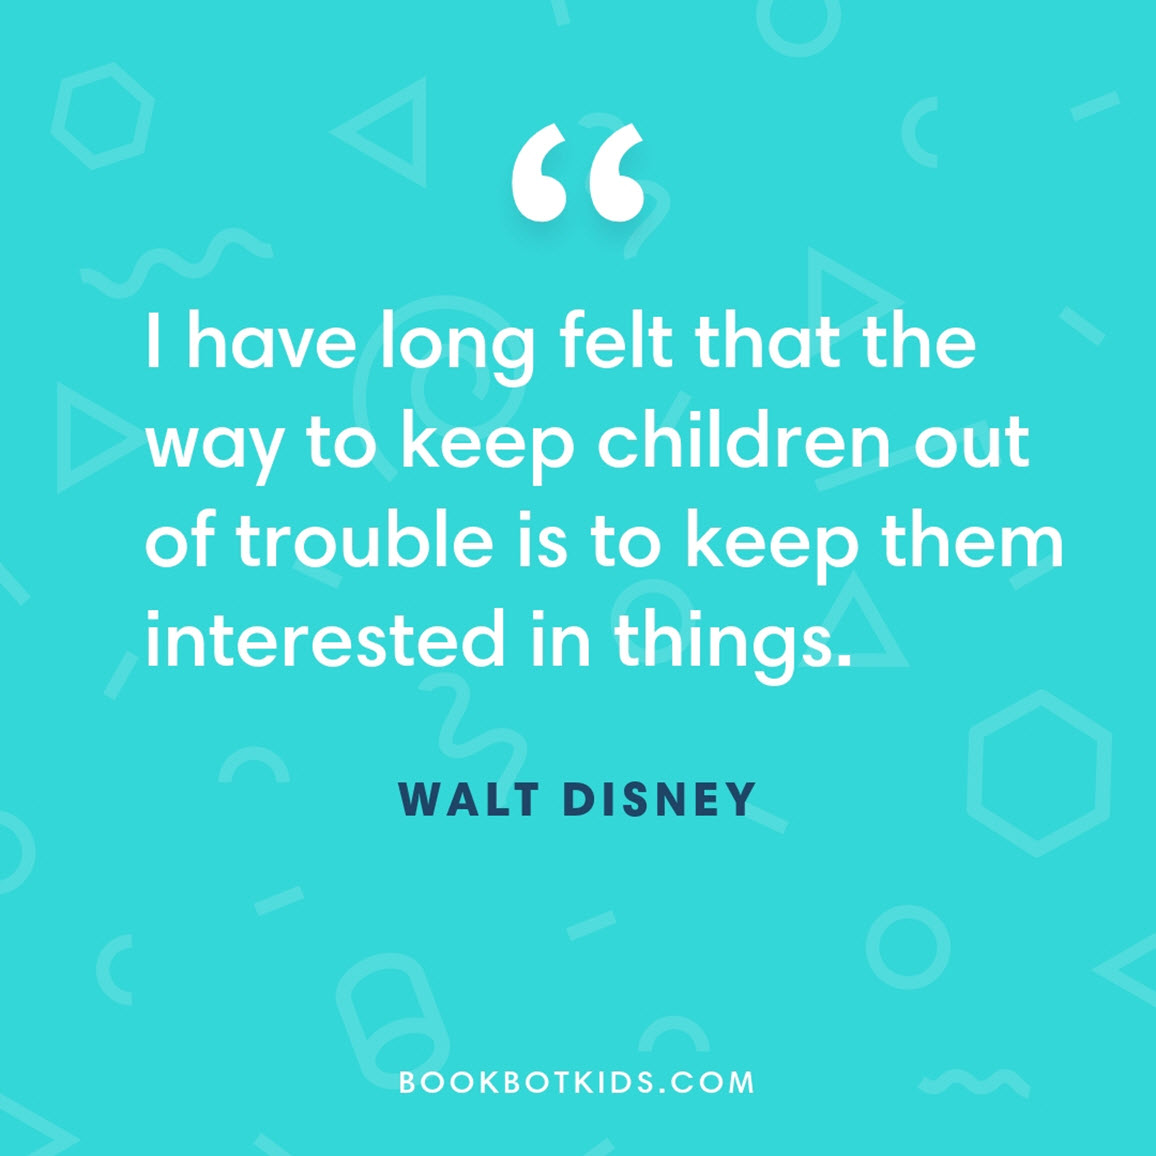 I have long felt that the way to keep children out of trouble is to keep them interested in things. – Walt Disney